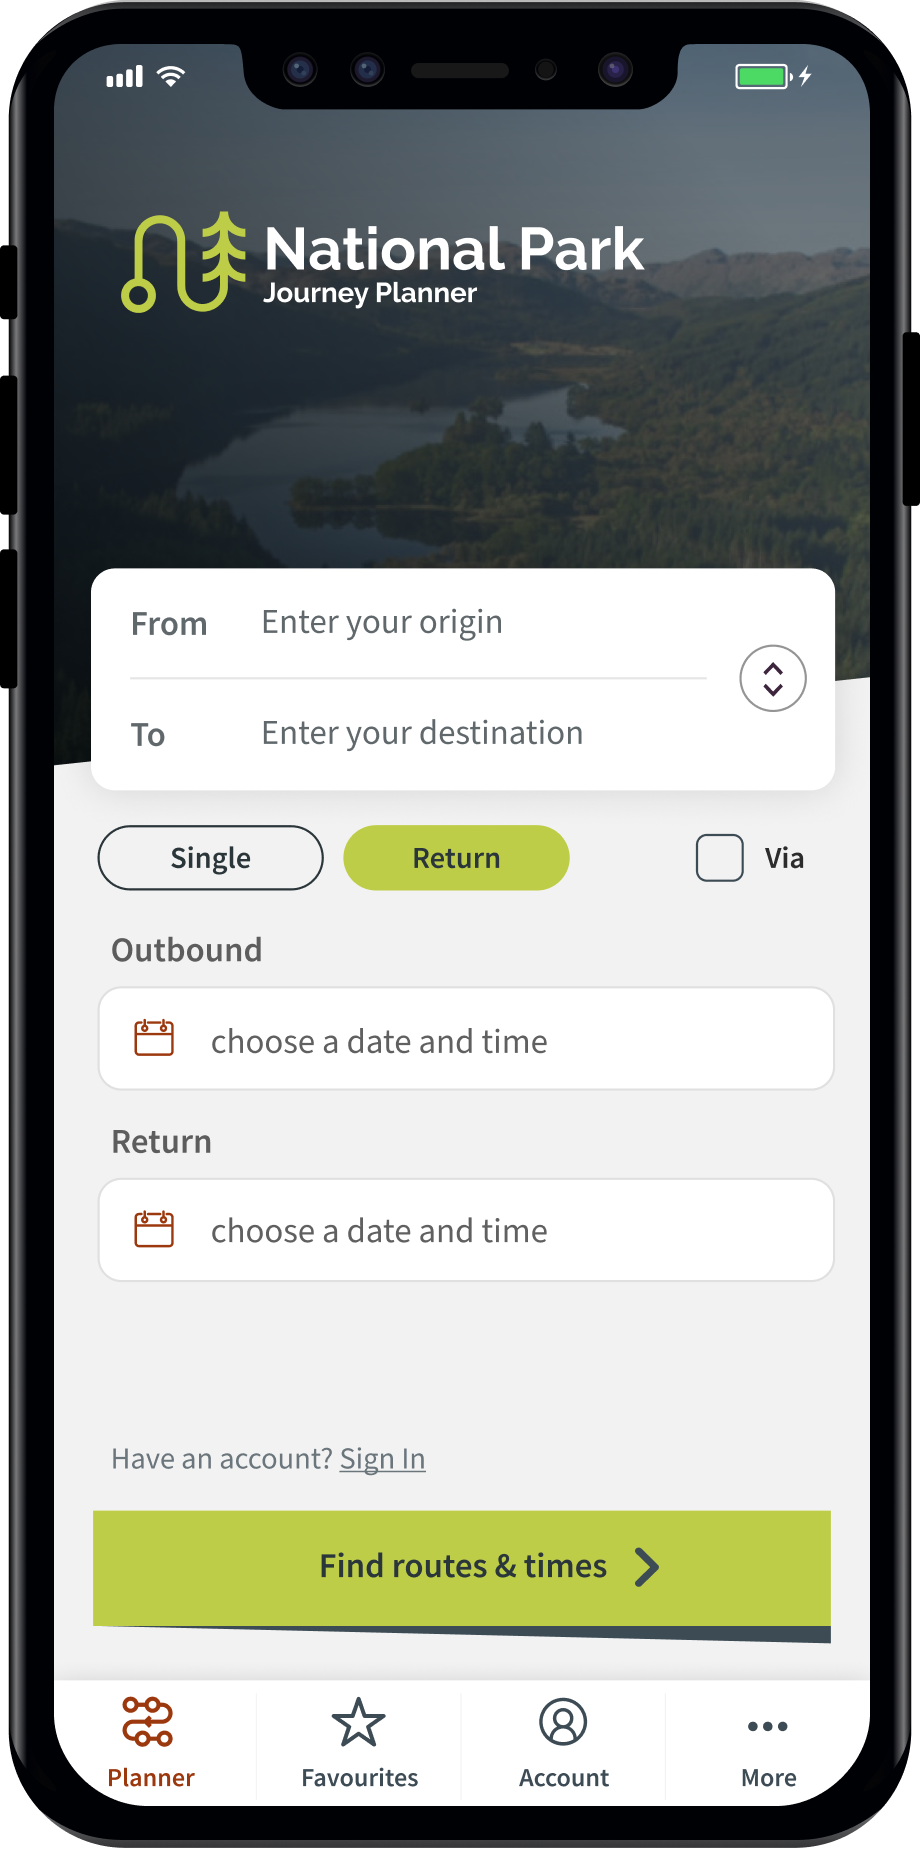 Phone showing cards of different journey options from GoAbz application